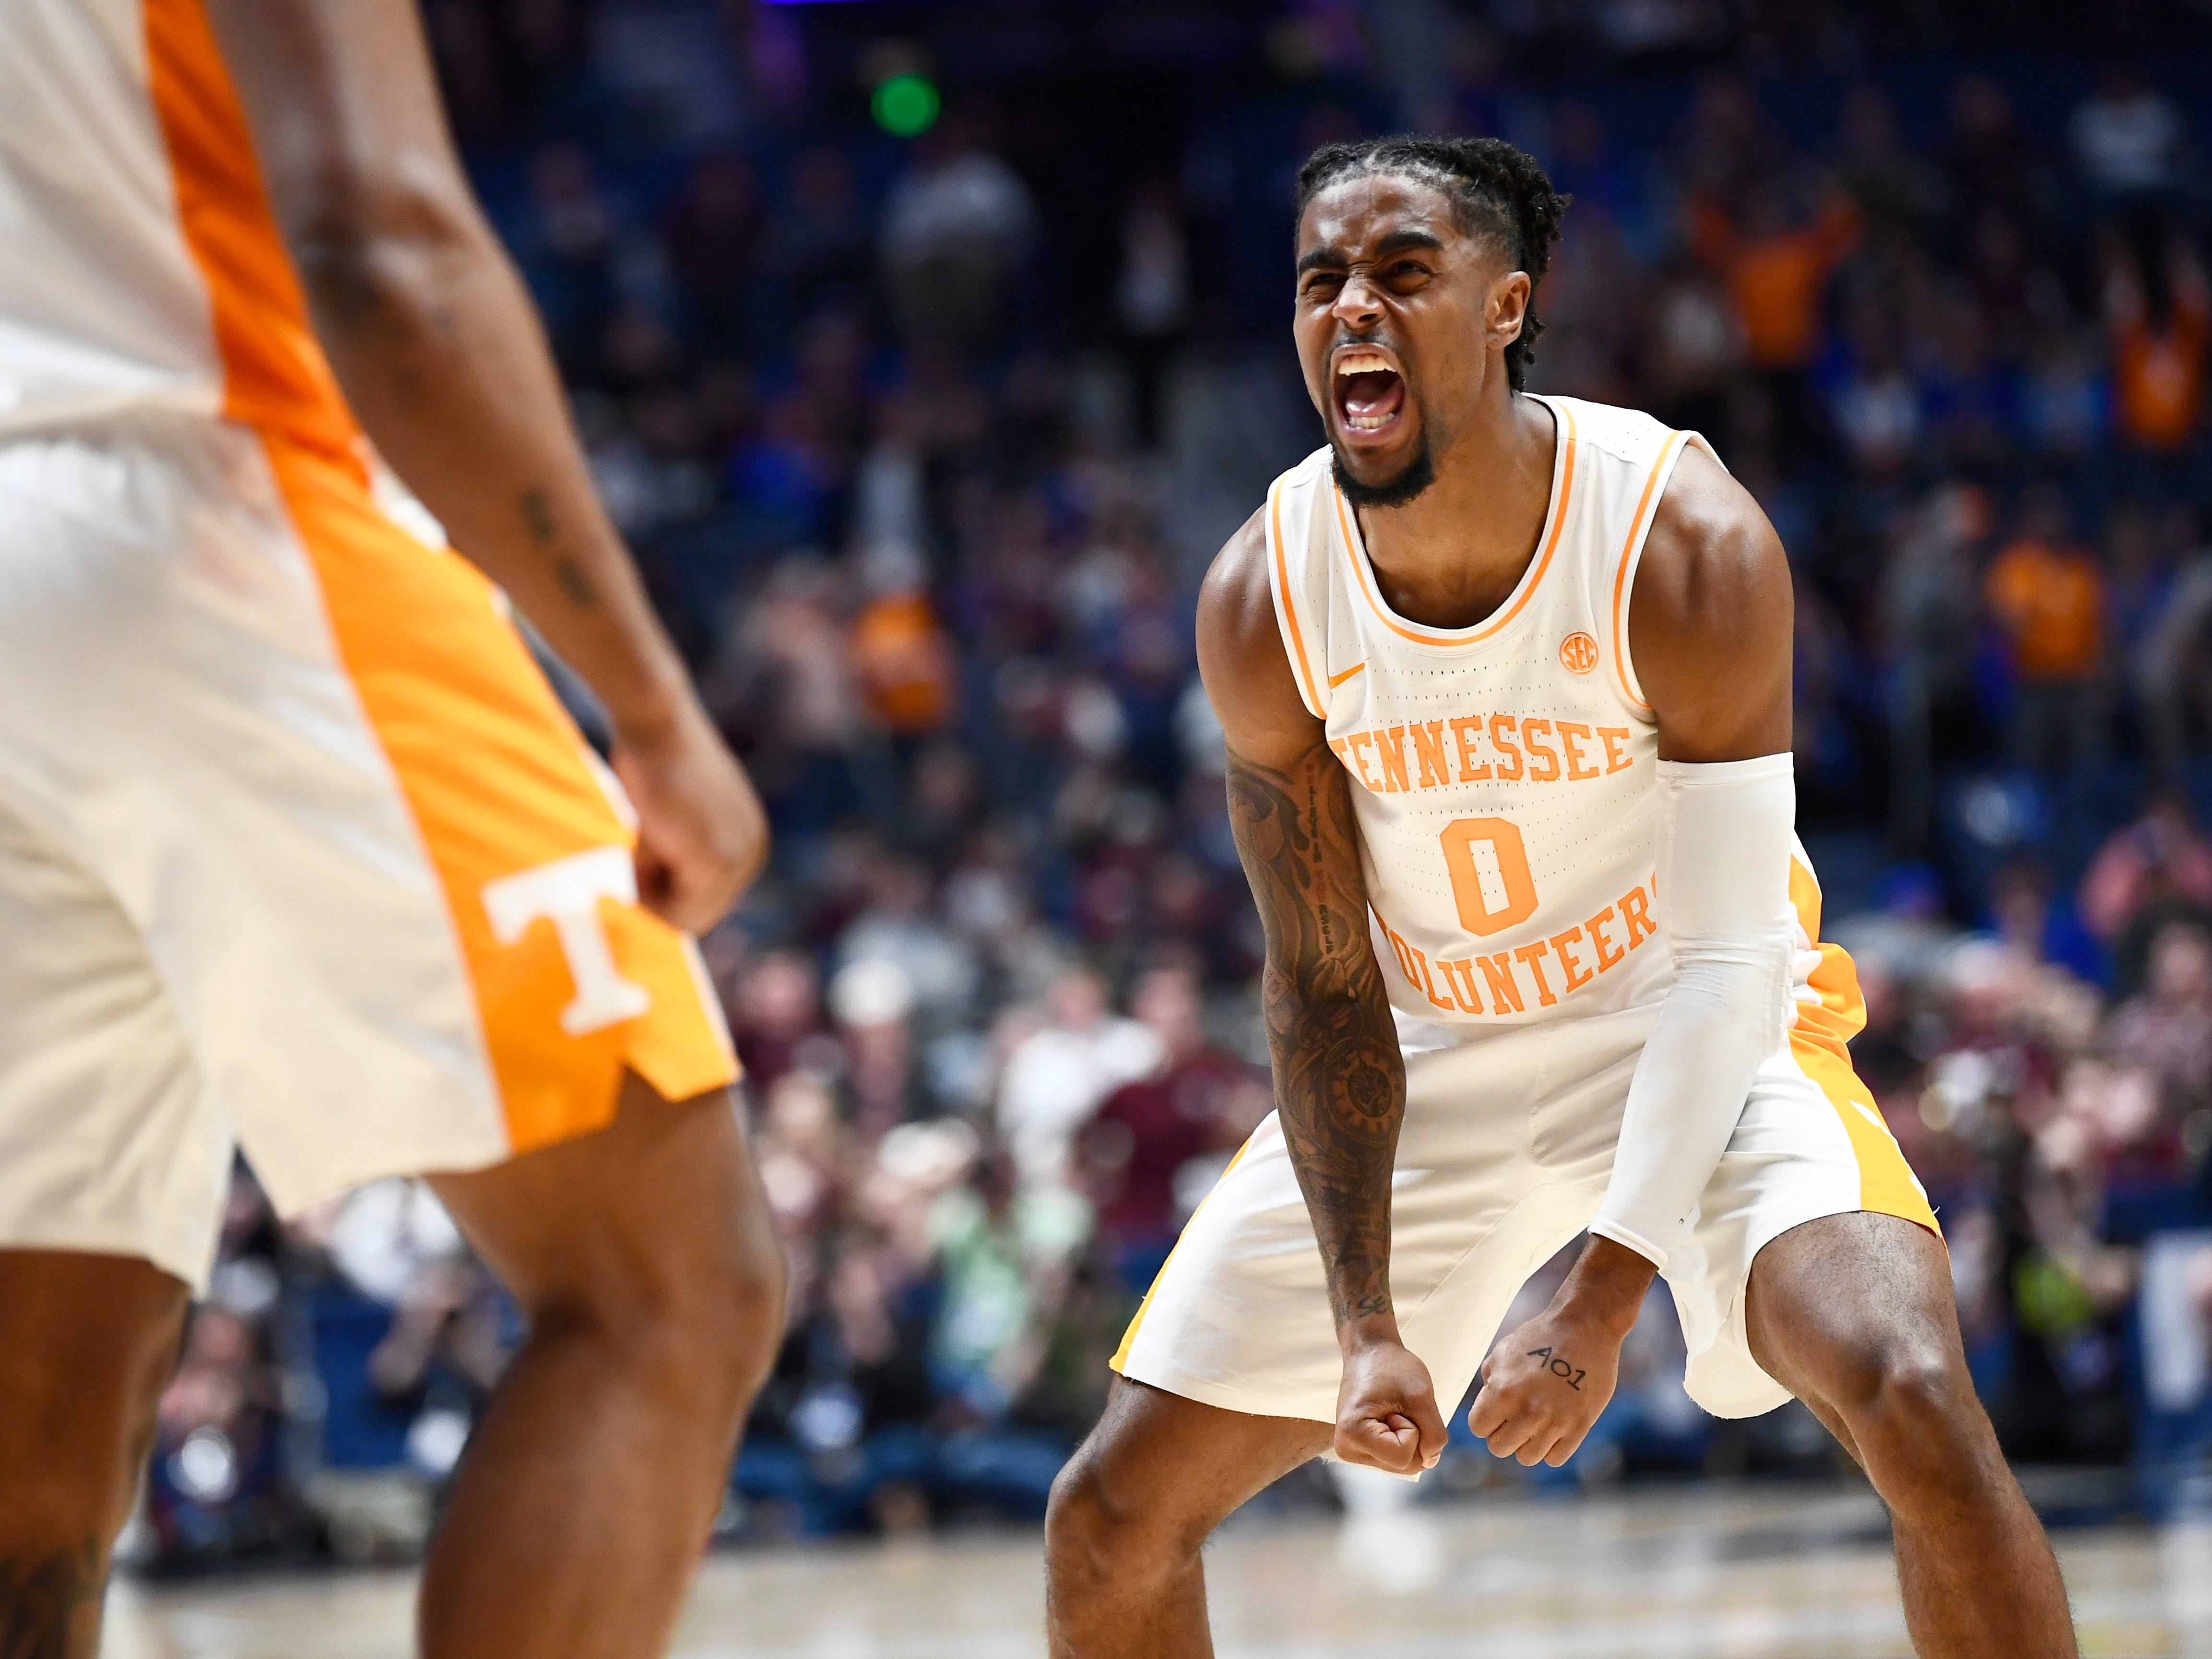 Tennessee guard Jordan Bone (0) reacts to a dunk by guard Admiral Schofield (5) during the second half of the SEC Men's Basketball Tournament game against Mississippi State at Bridgestone Arena in Nashville, Tenn., Friday, March 15, 2019.